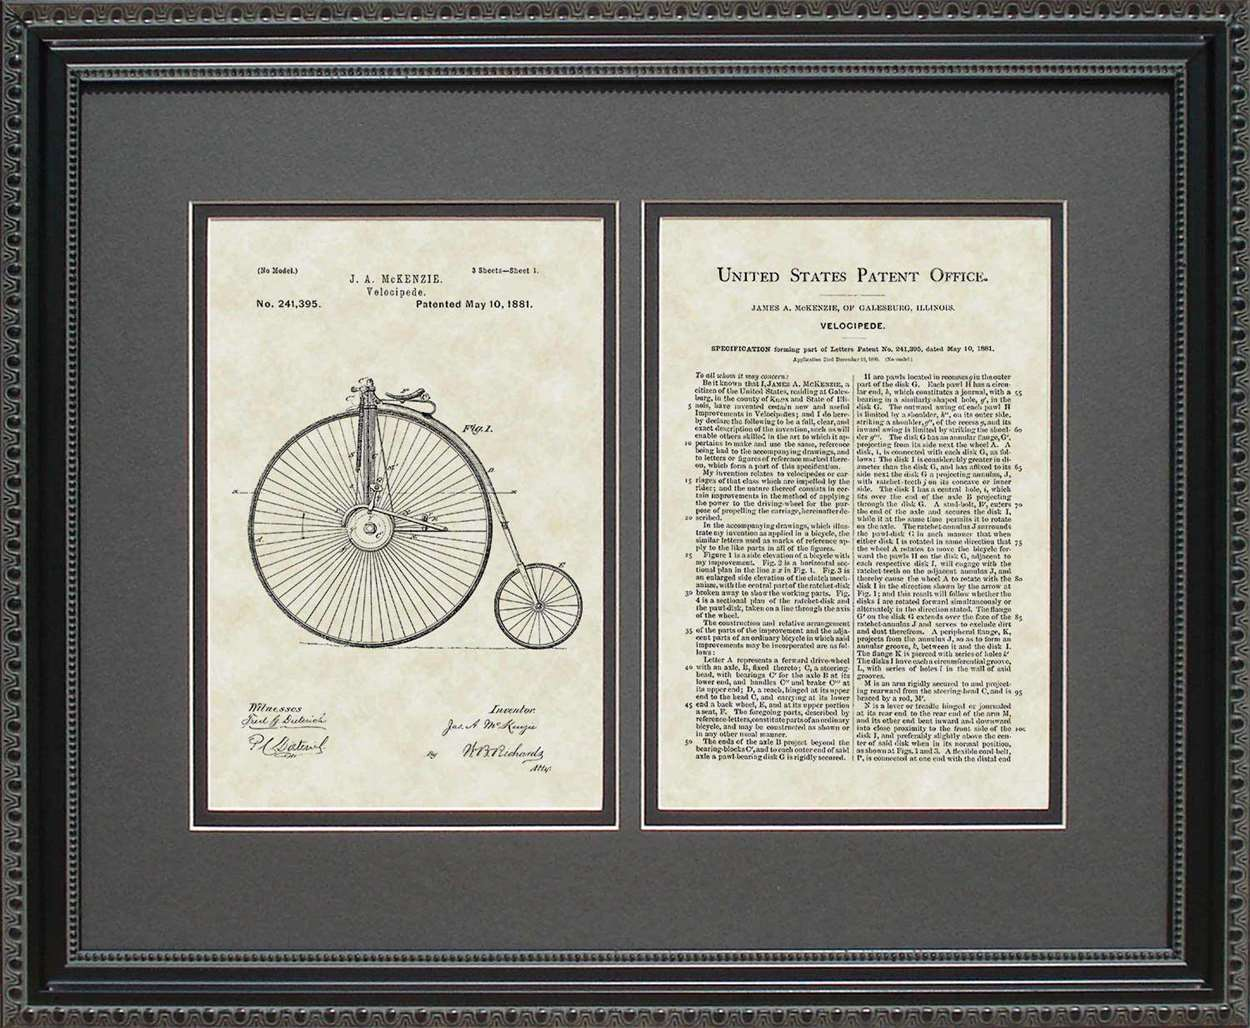 Penny-Farthing Bicycle Patent, Art & Copy, McKenzie, 1881, 16x20